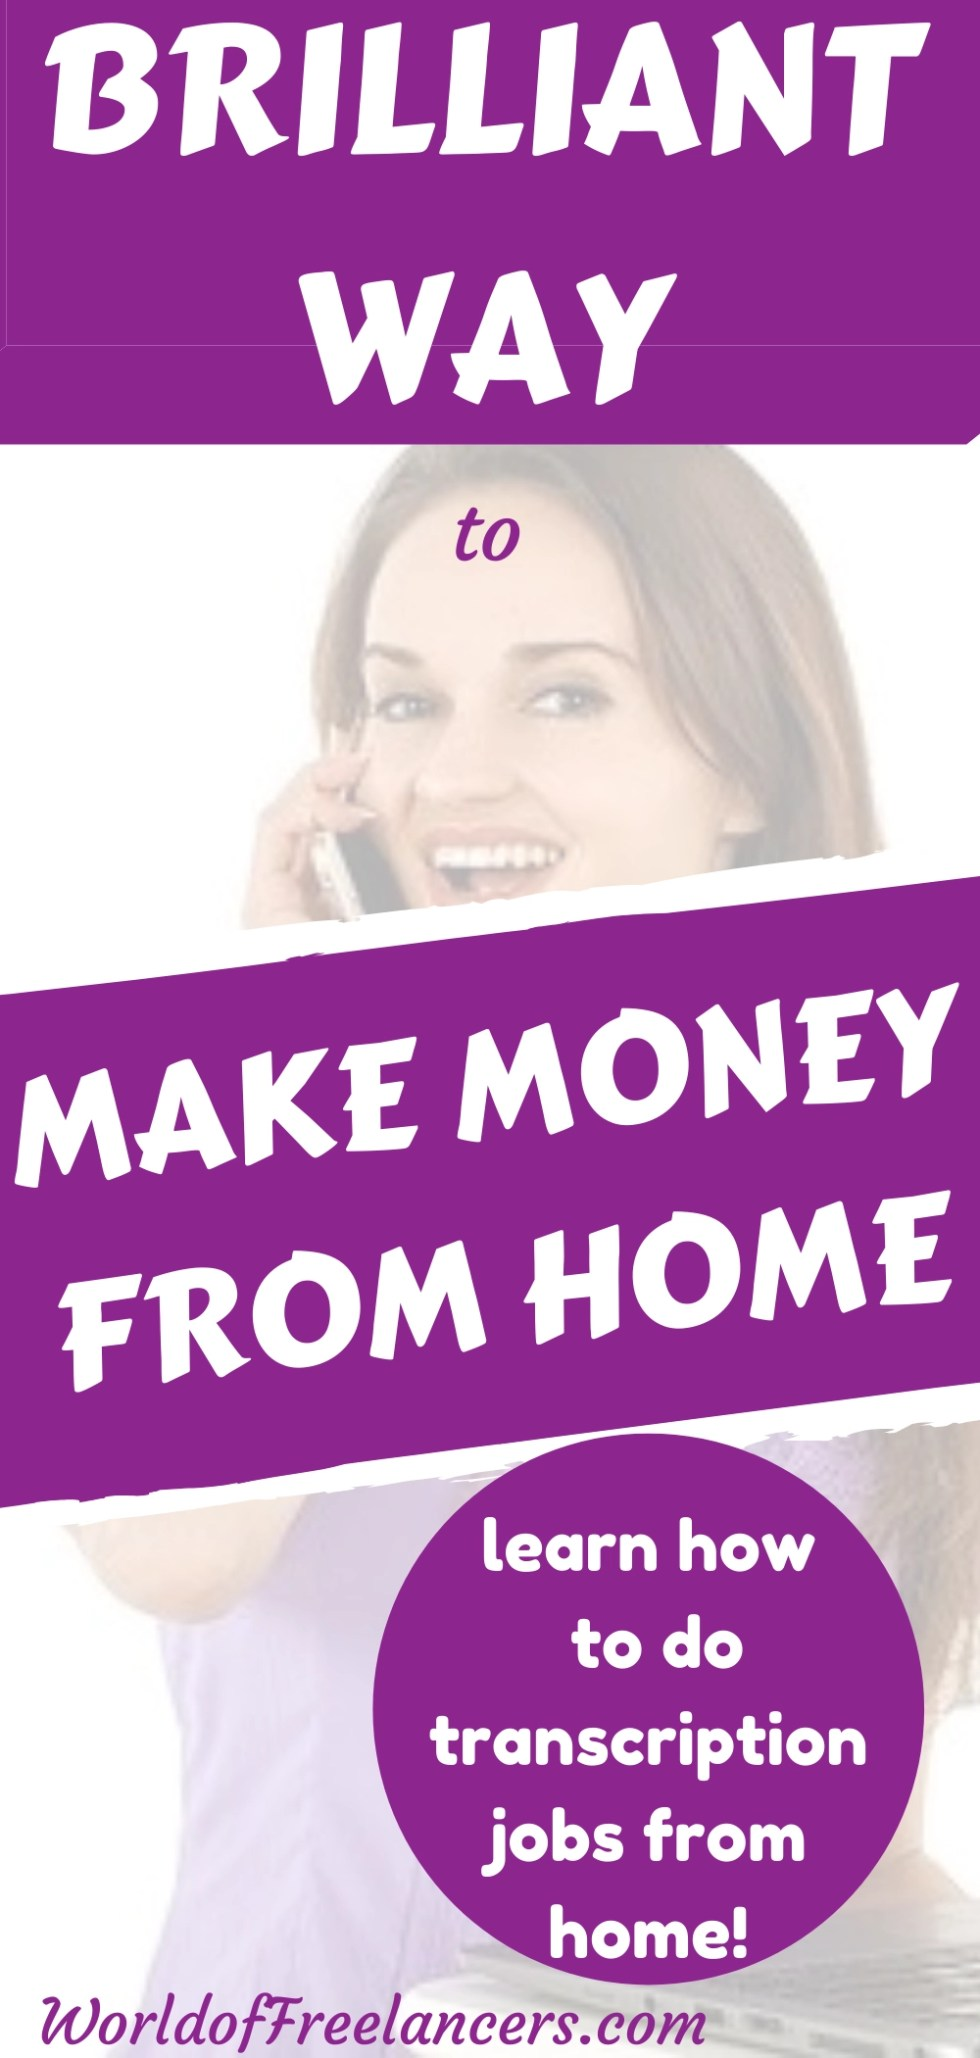 Pinterest image woman smiling on phone with text brilliant way to make money from home learn how to do transcription jobs from home